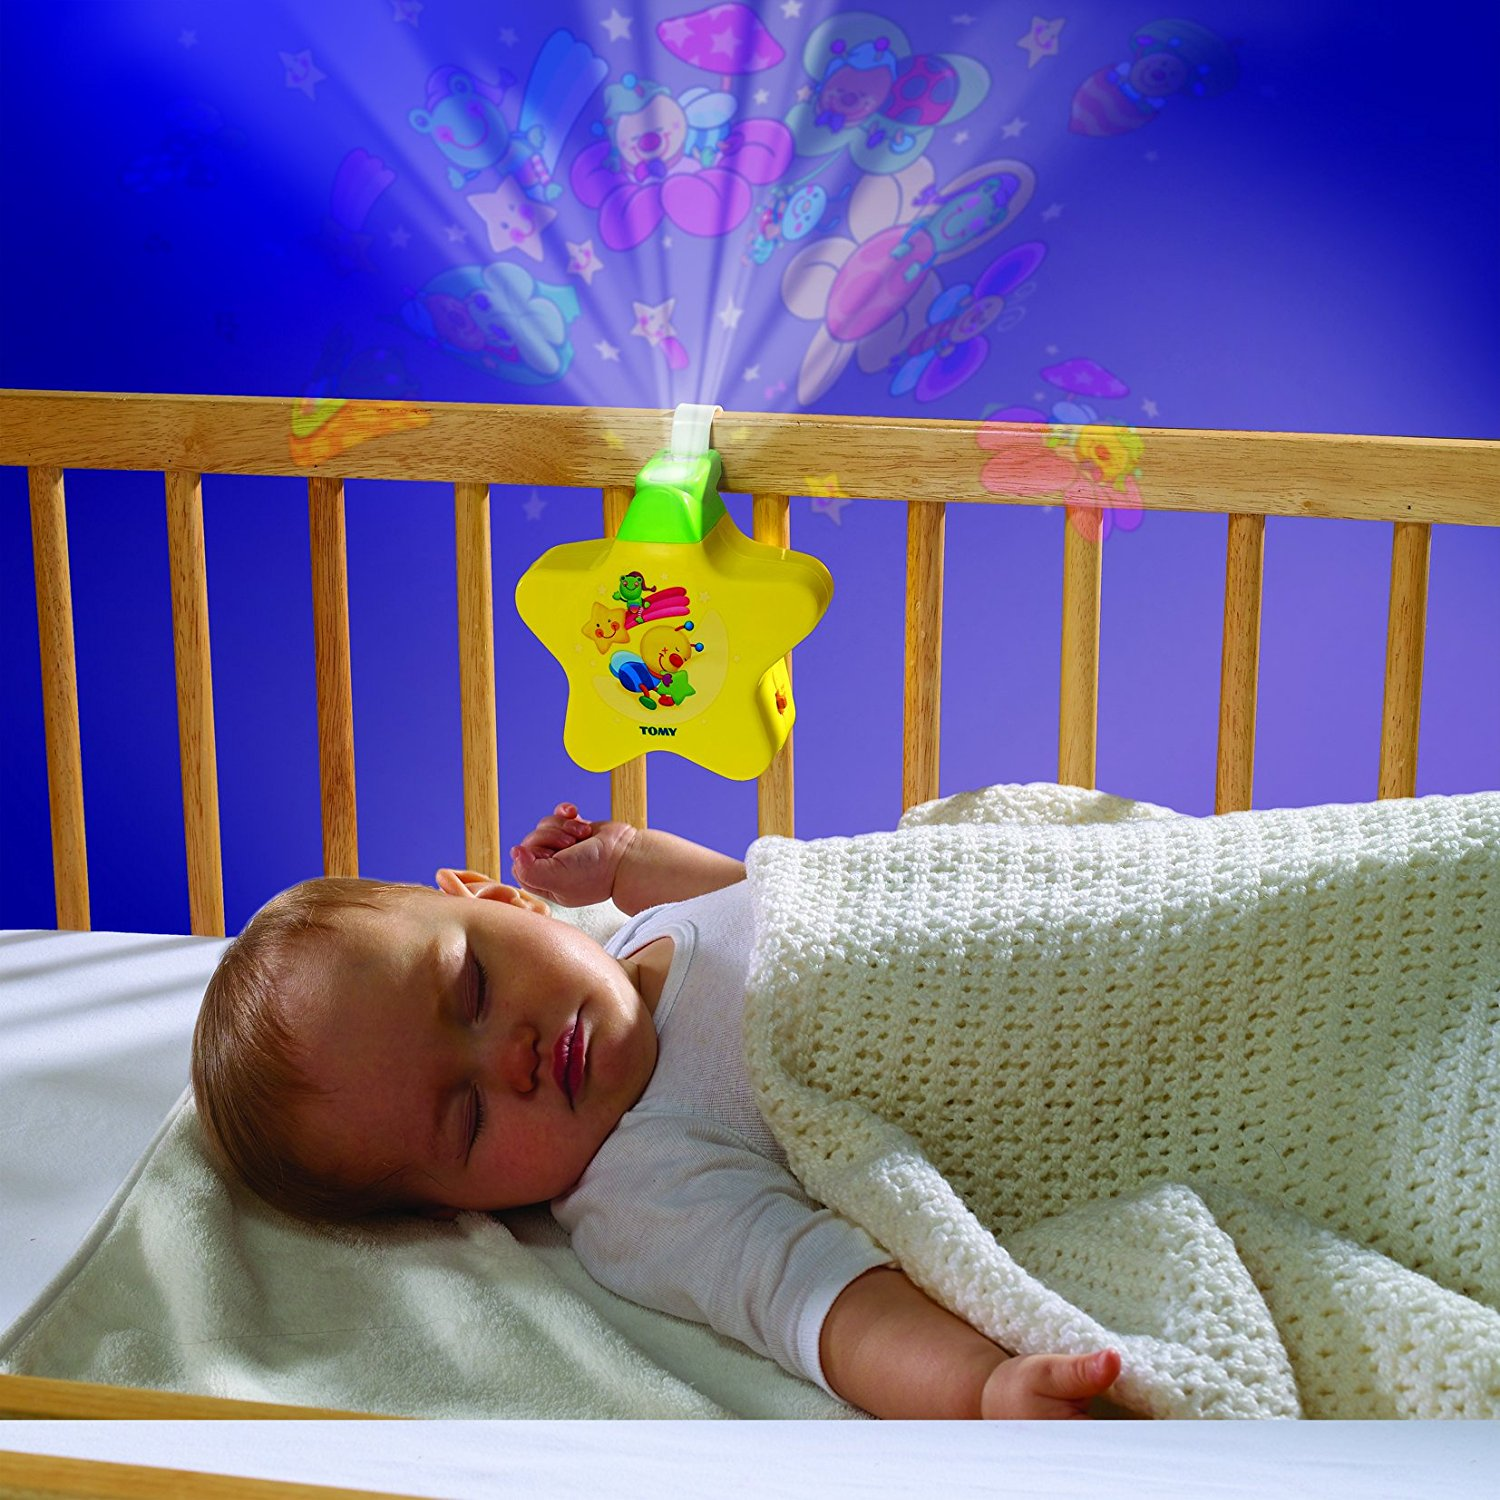 Tomy starlight dreamshow yellow babys cot musical night light tomy starlight dreamshow yellow babys cot musical night light ceiling projector 0 mozeypictures Image collections